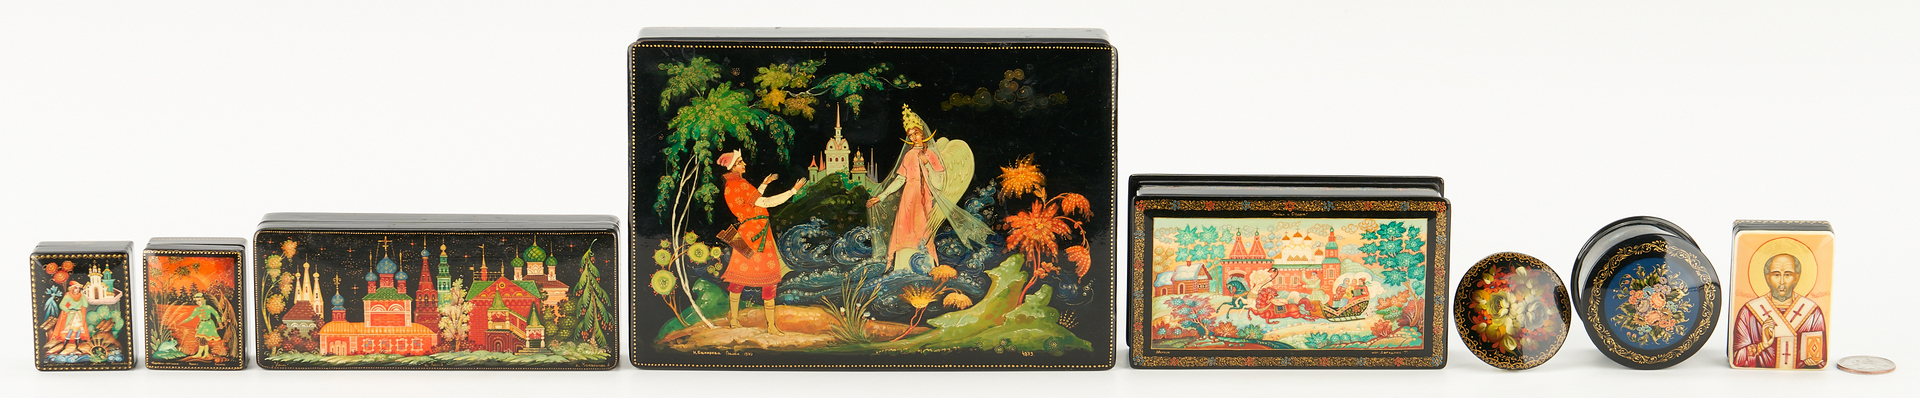 Lot 1161: 8 Russian Lacquer items incl. Boxes & 1 Pin